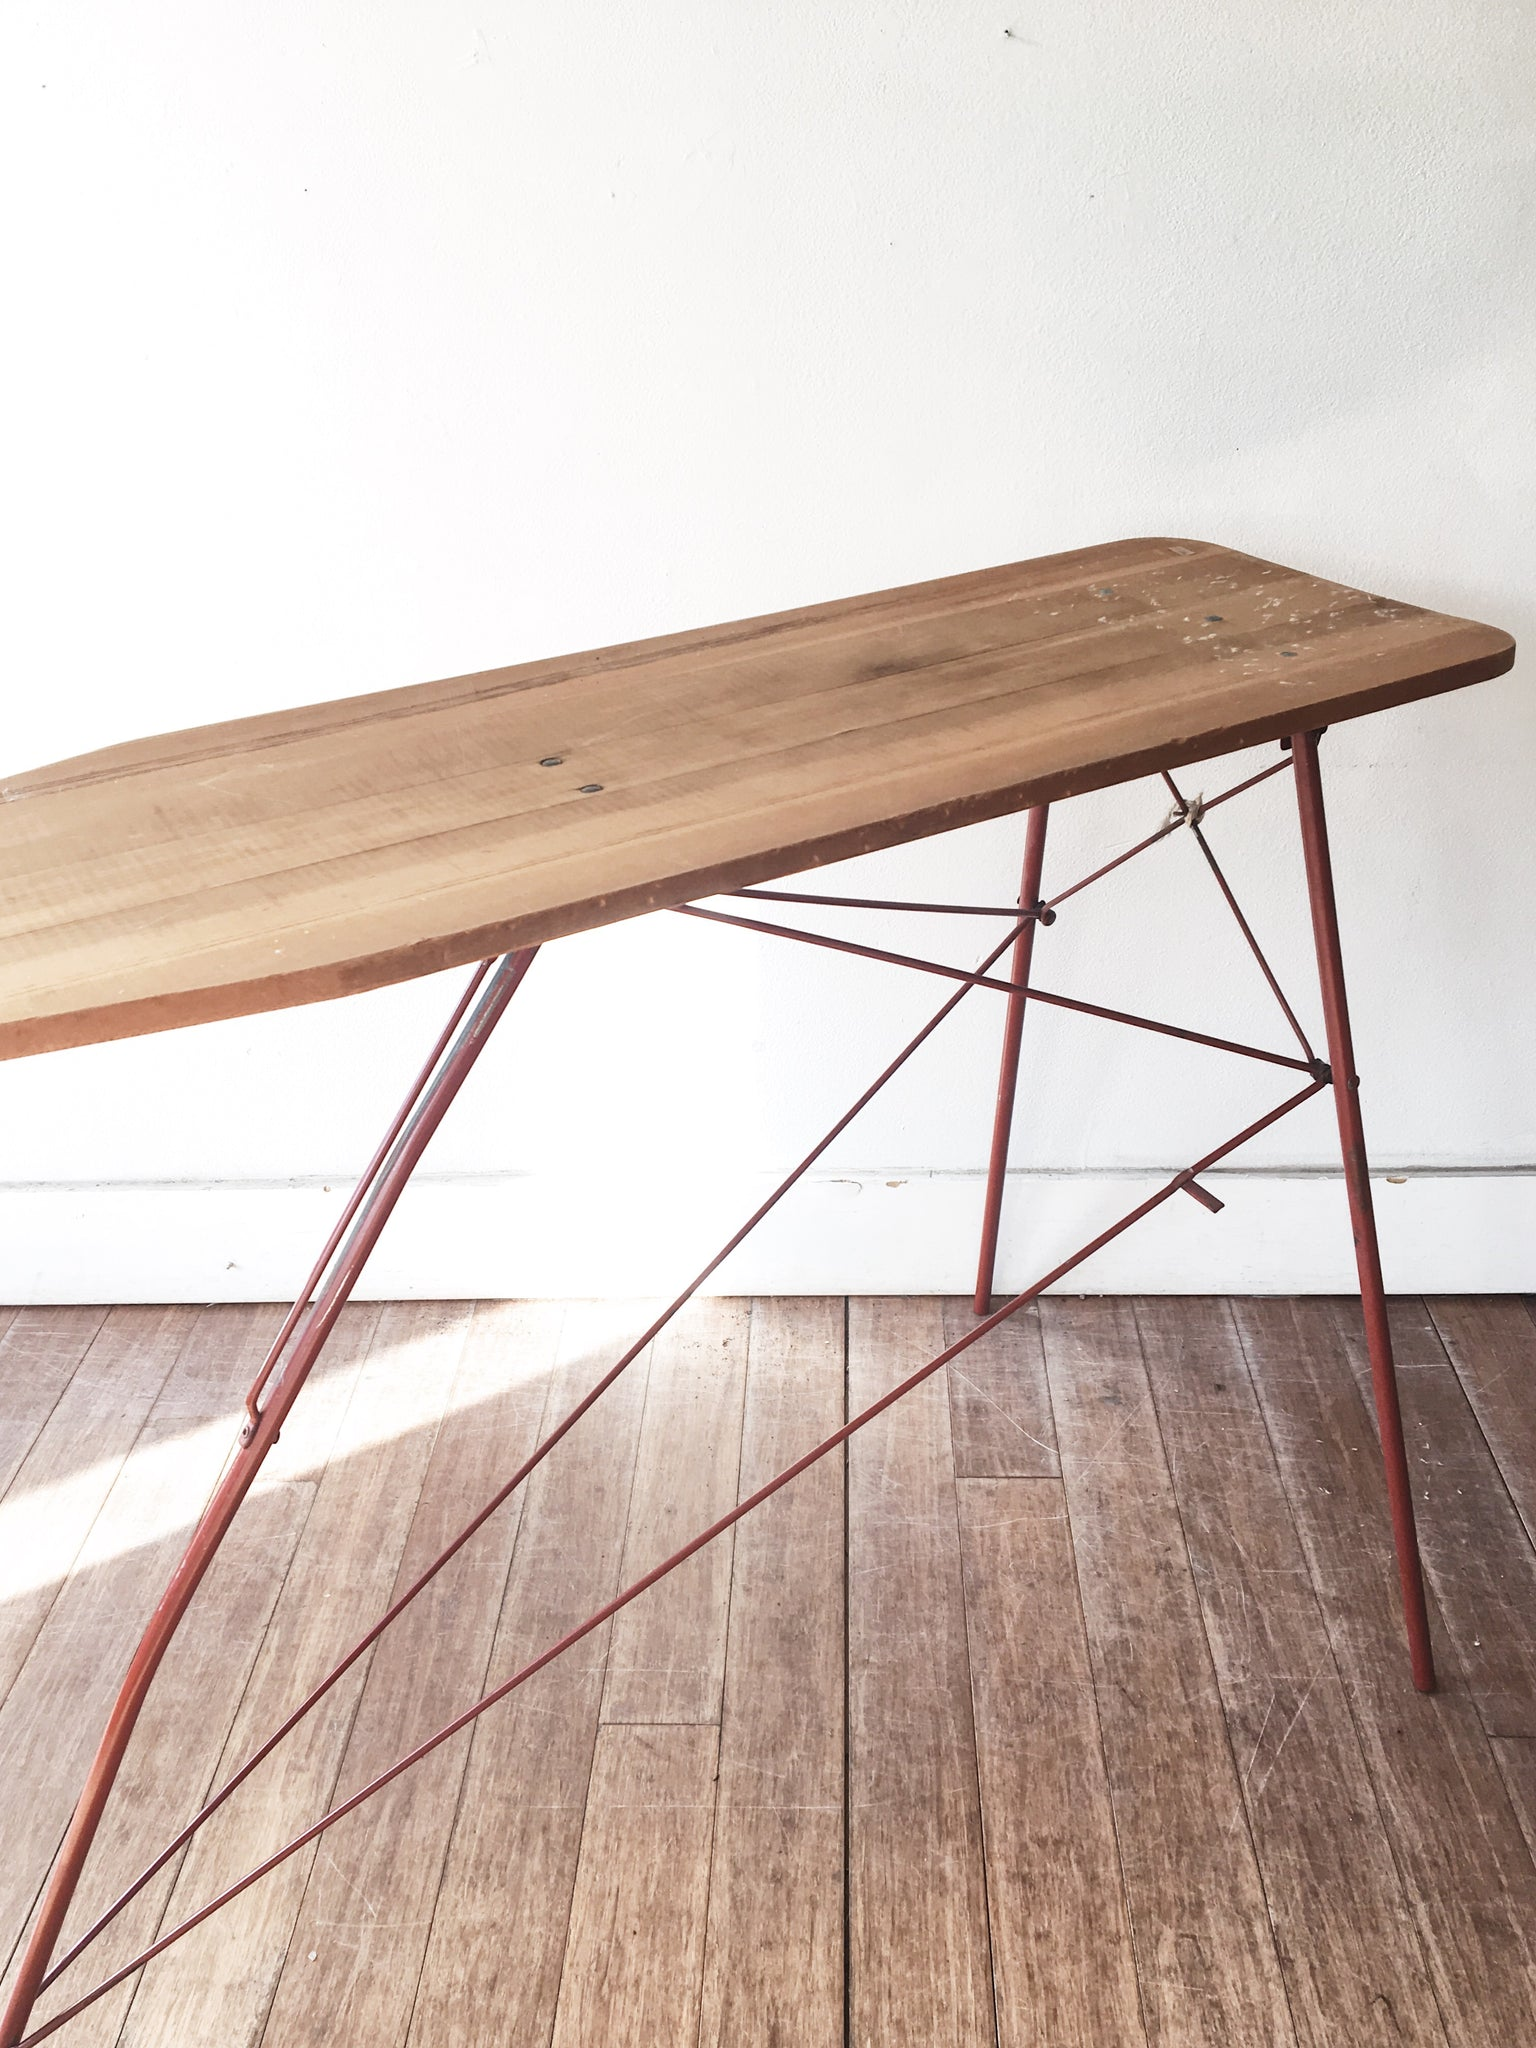 Vintage Wood and Metal Ironing Board